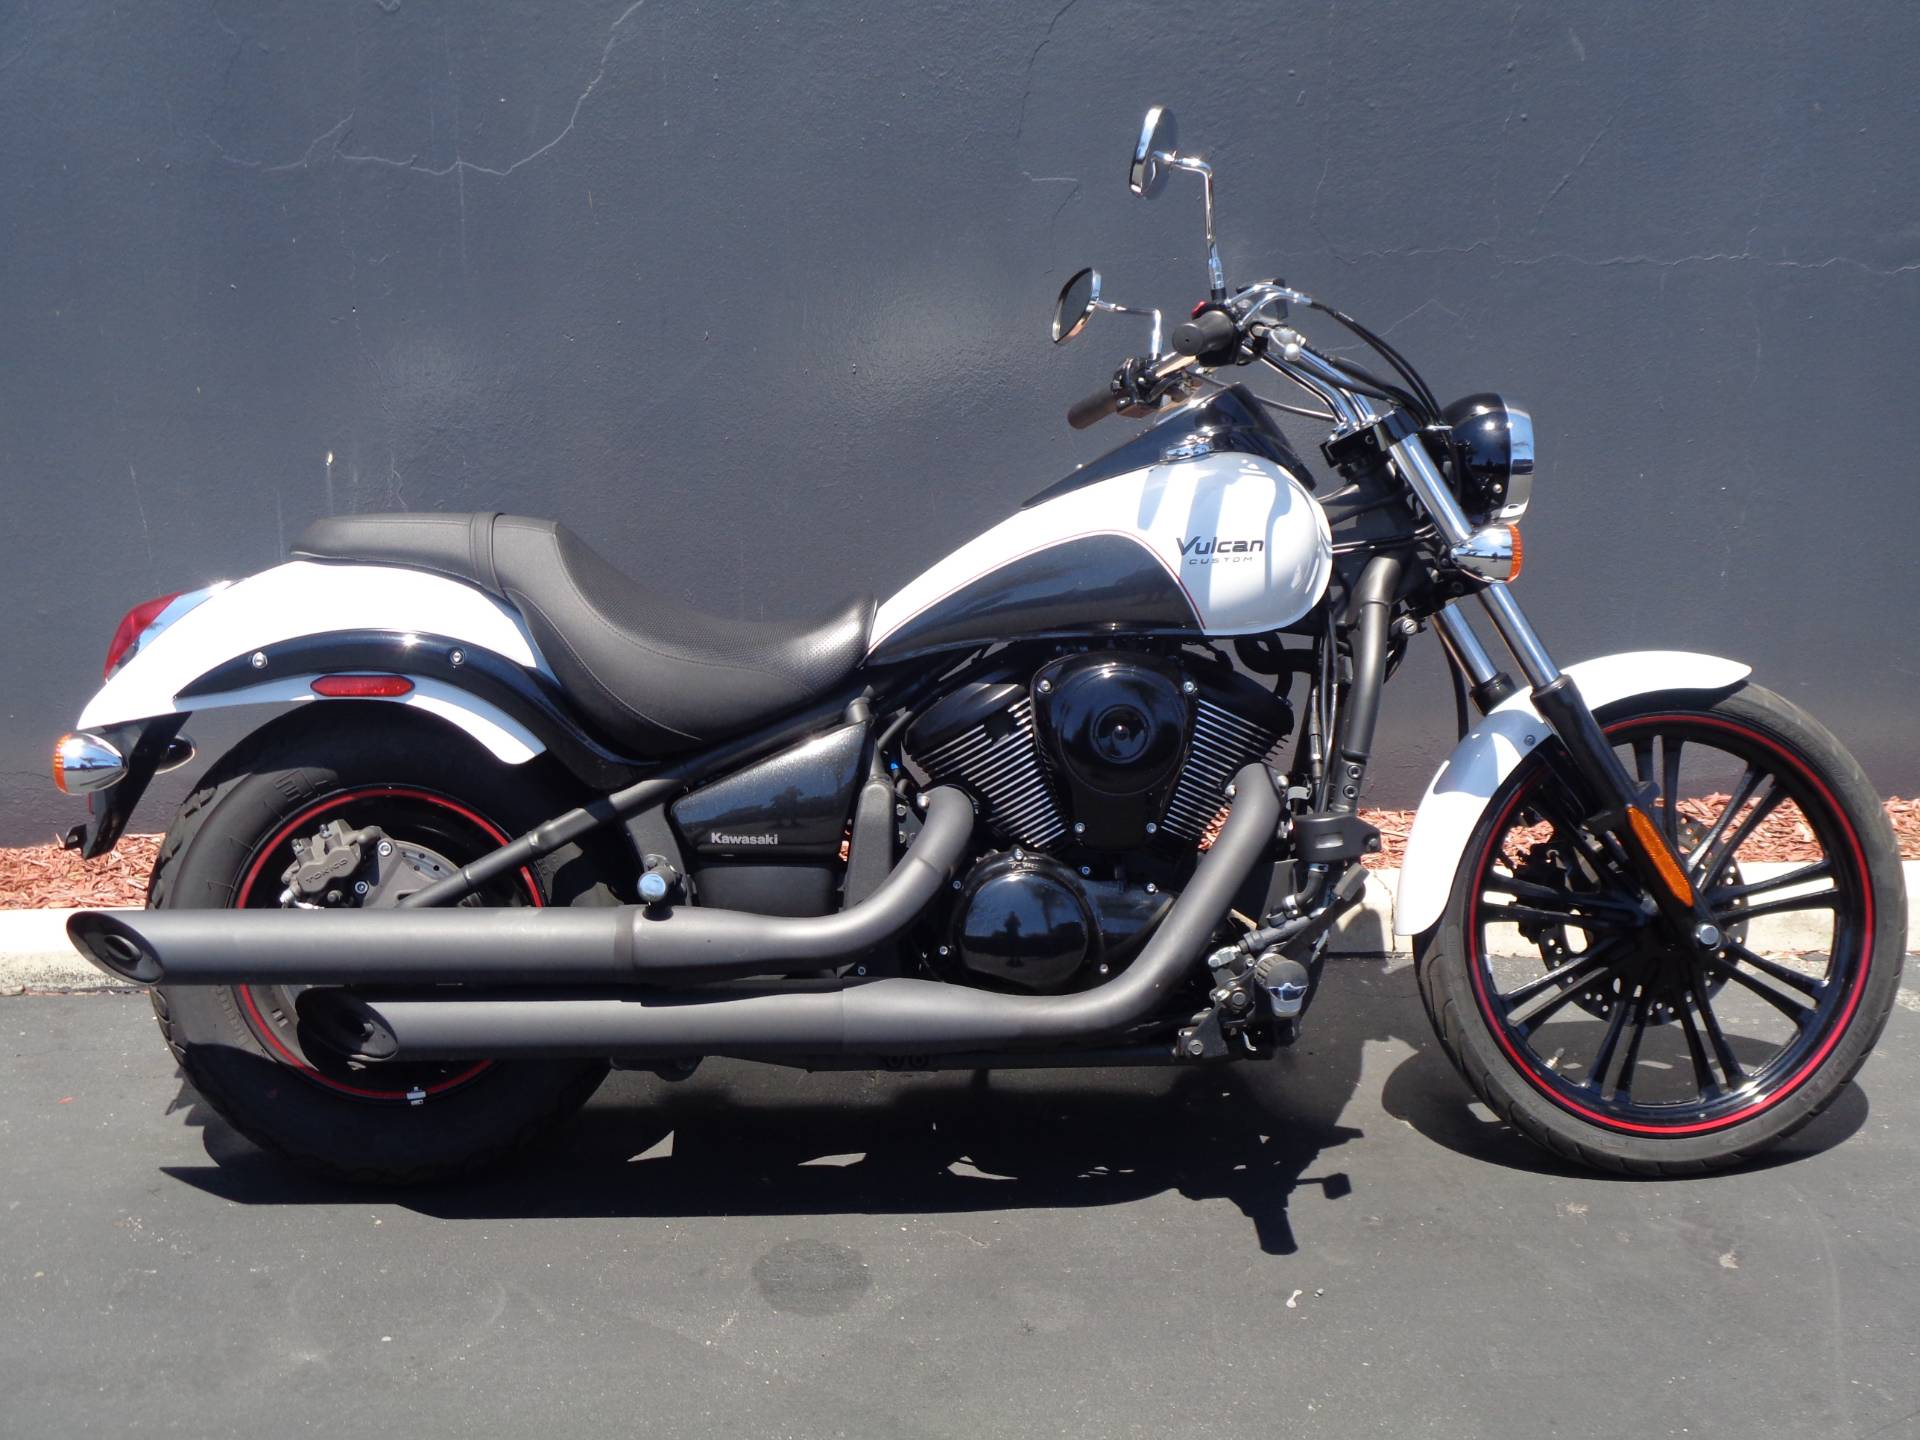 2016 Kawasaki Vulcan 900 Custom in Chula Vista, California - Photo 1